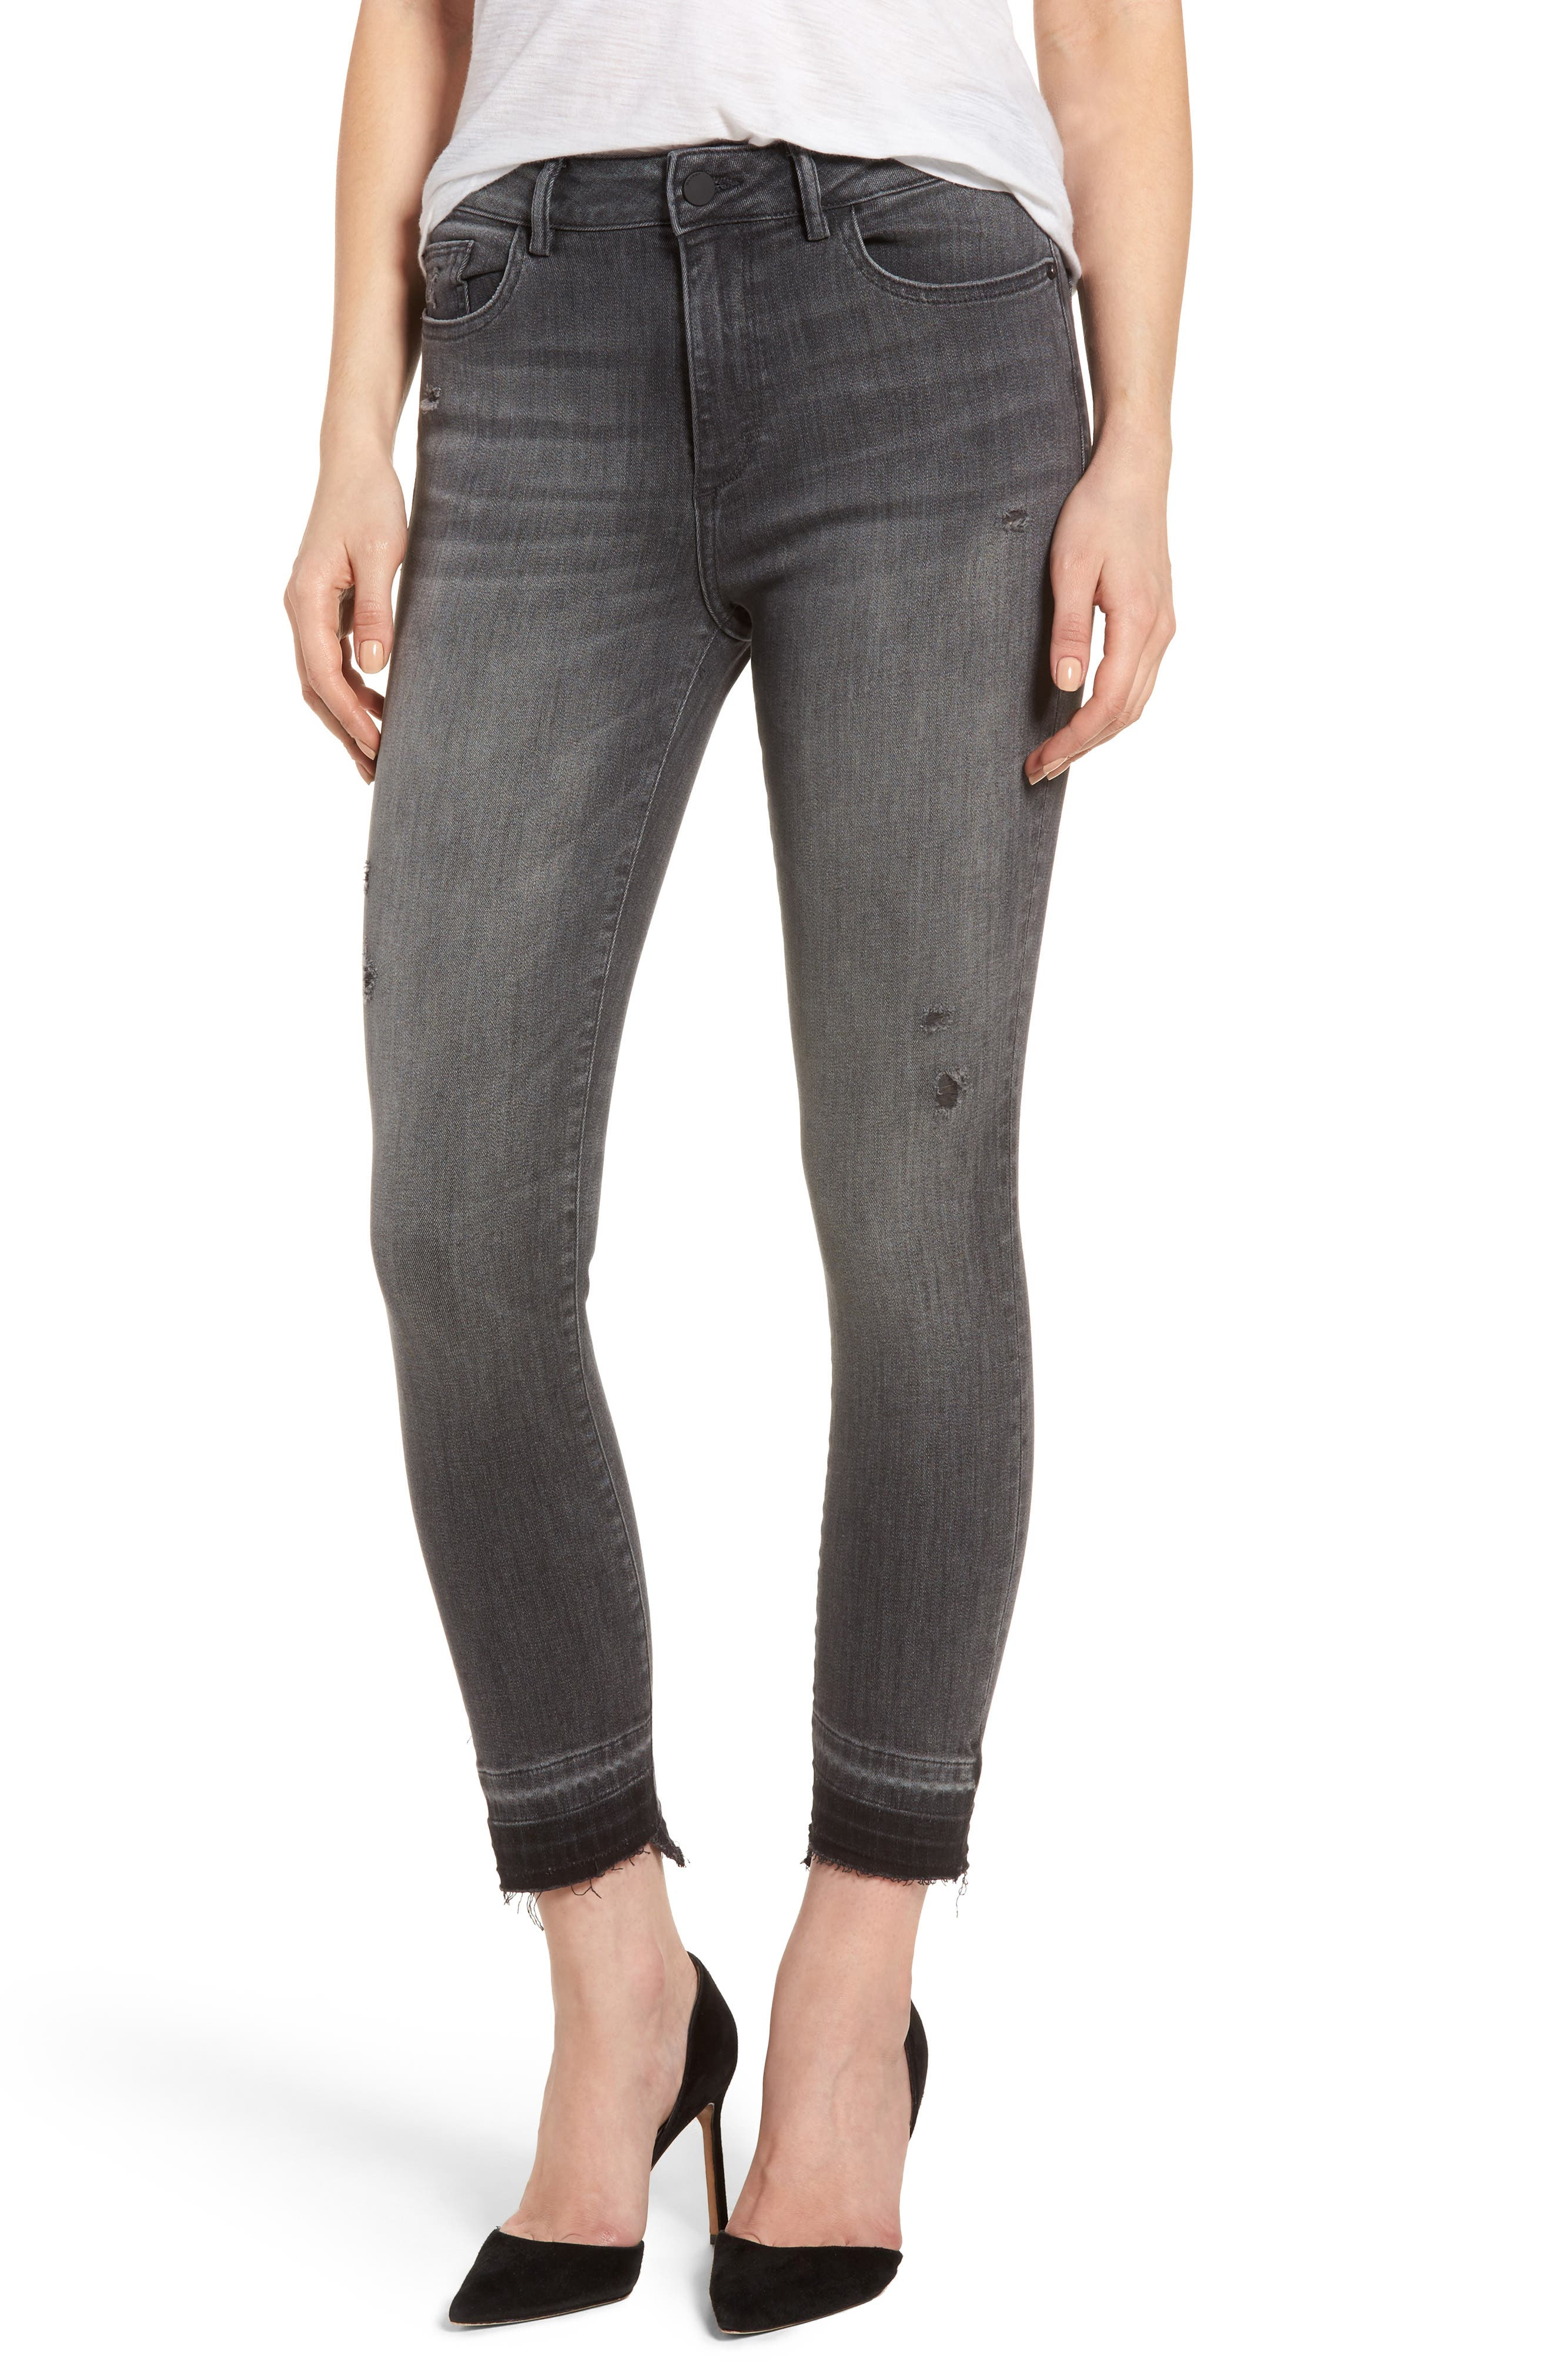 DL1961 Farrow High Waist Instaslim Skinny Jeans (Whitney)